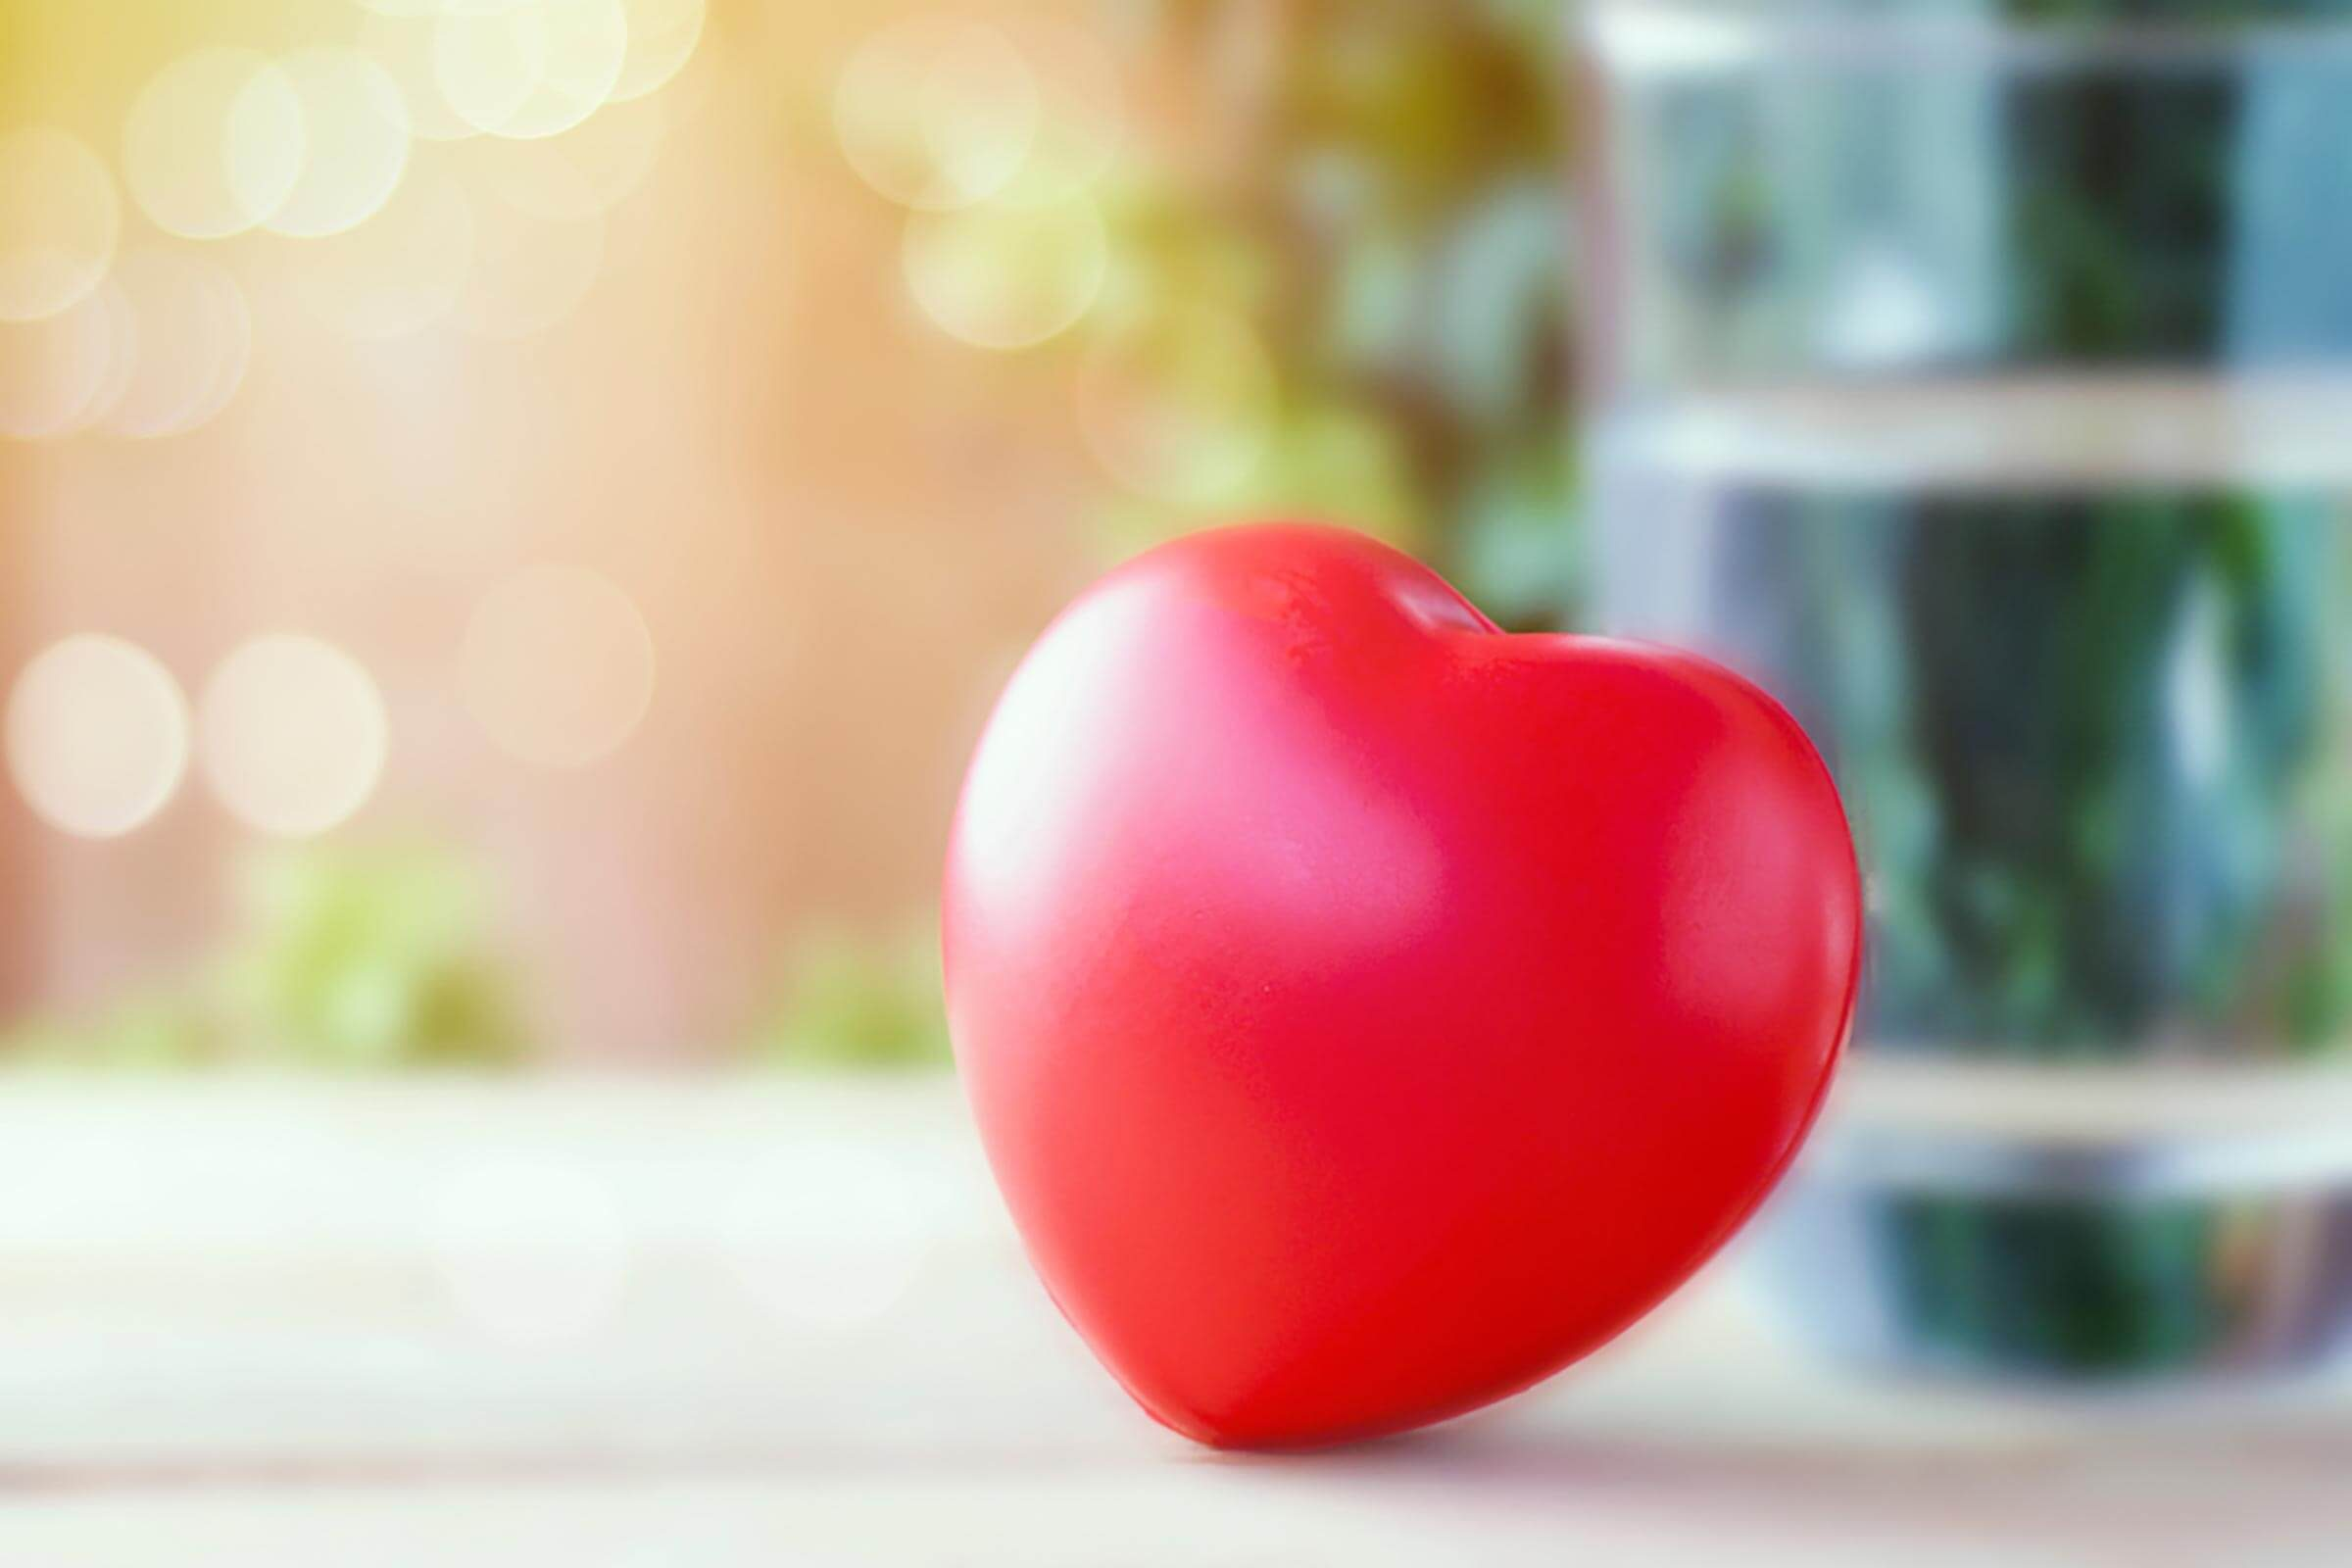 toy heart leaning against glass of water